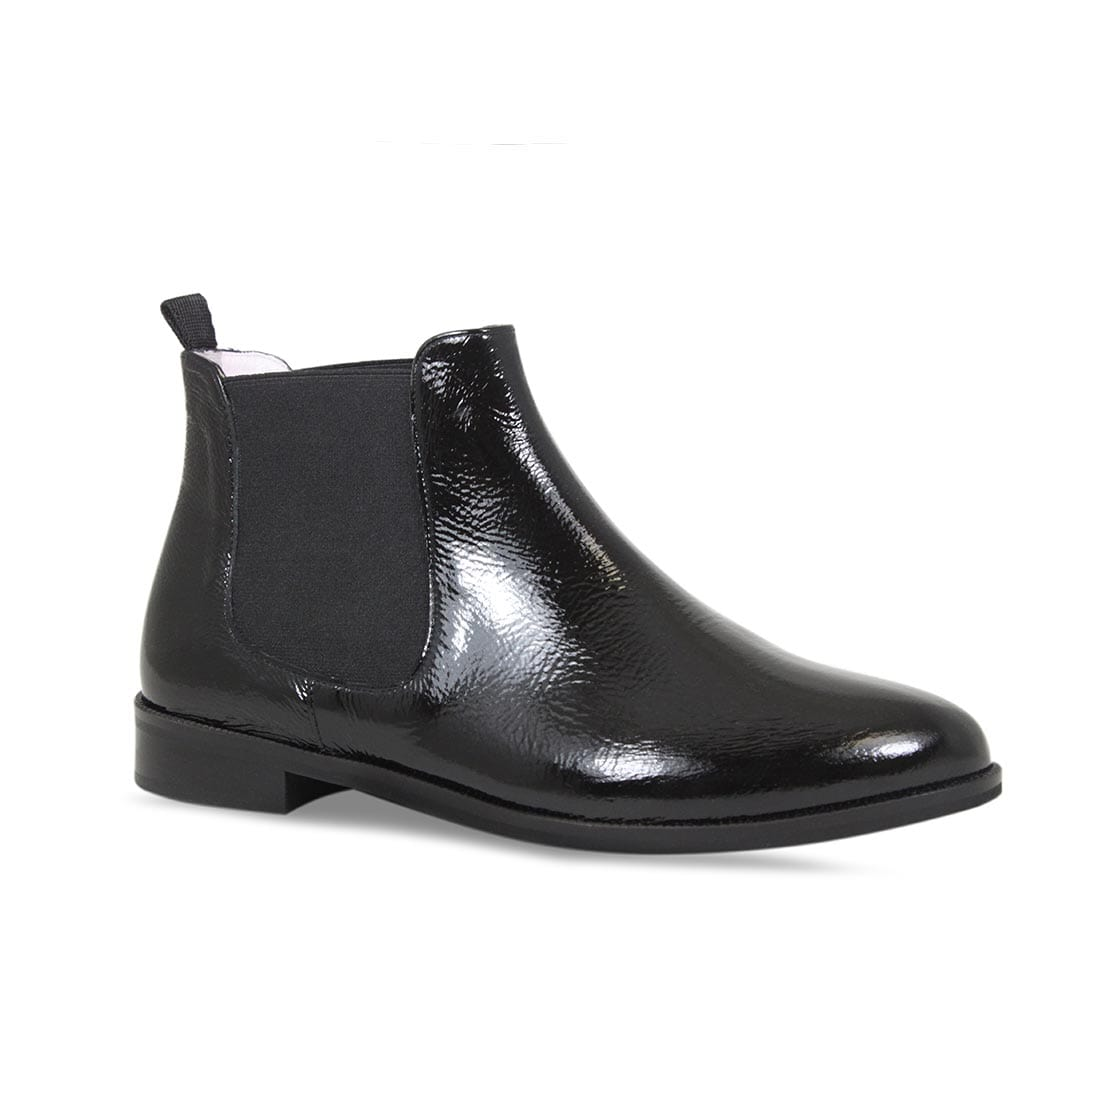 Black Patent Leather Flat Chelsea Boots